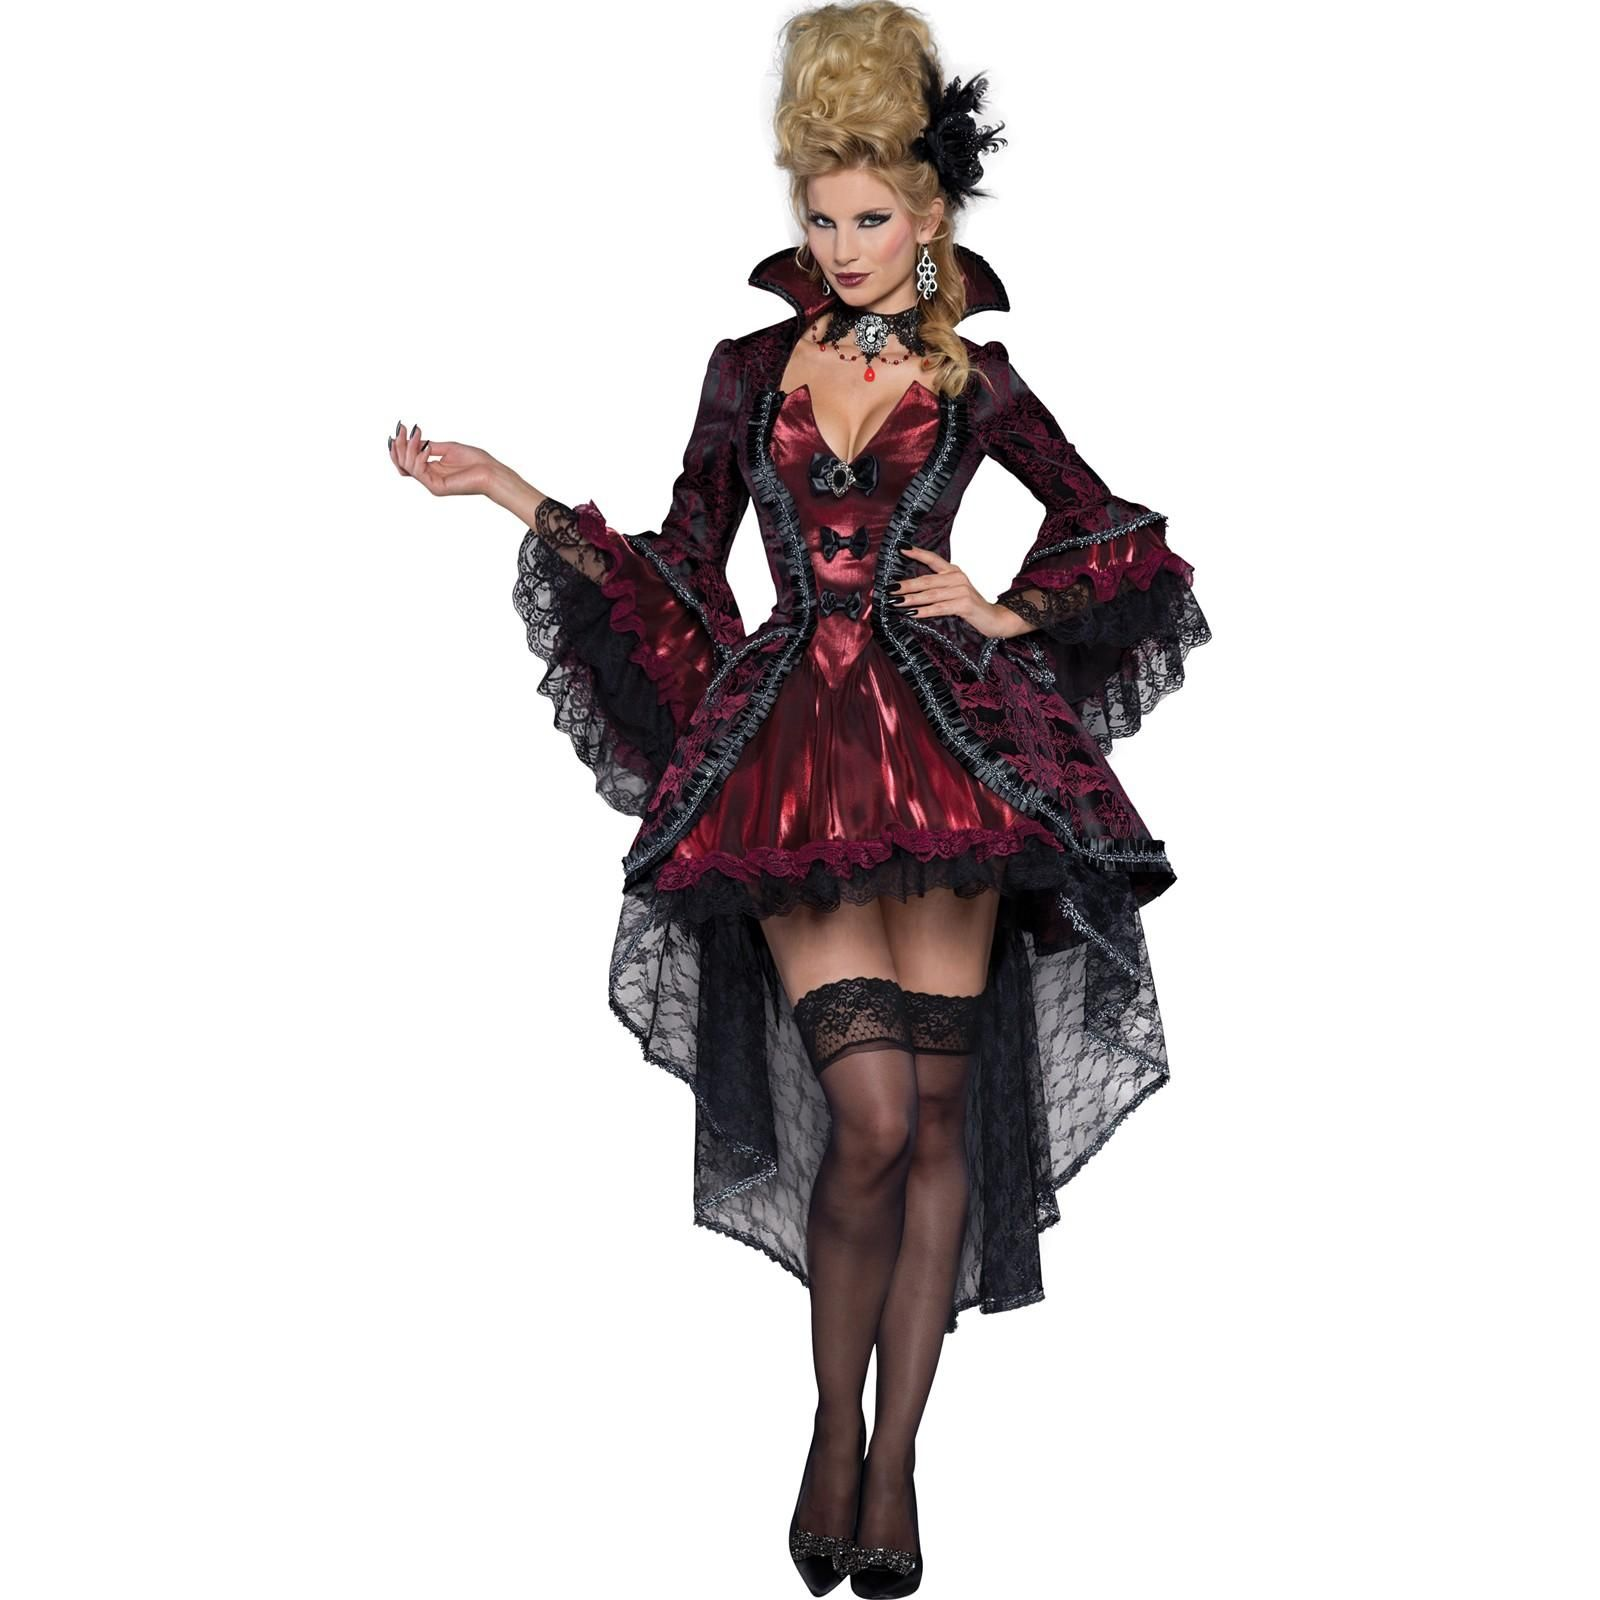 046027a75cbe5 Victorian Vamp Costume For Adults | Halloween | Vampire costumes ...